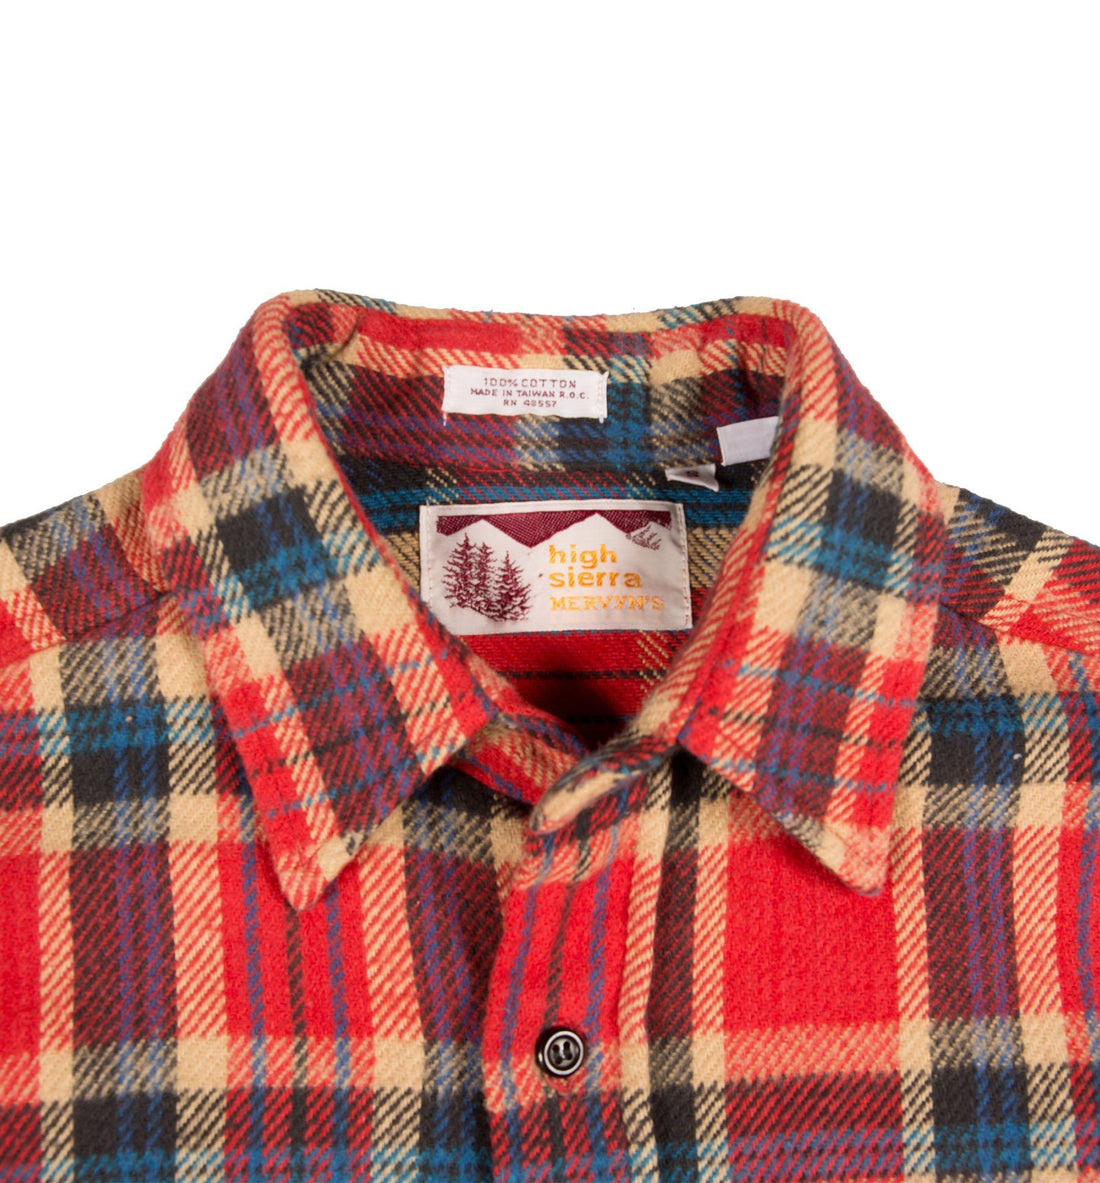 70's High Sierra Mervins Flannel - Vintage - Iron and Resin